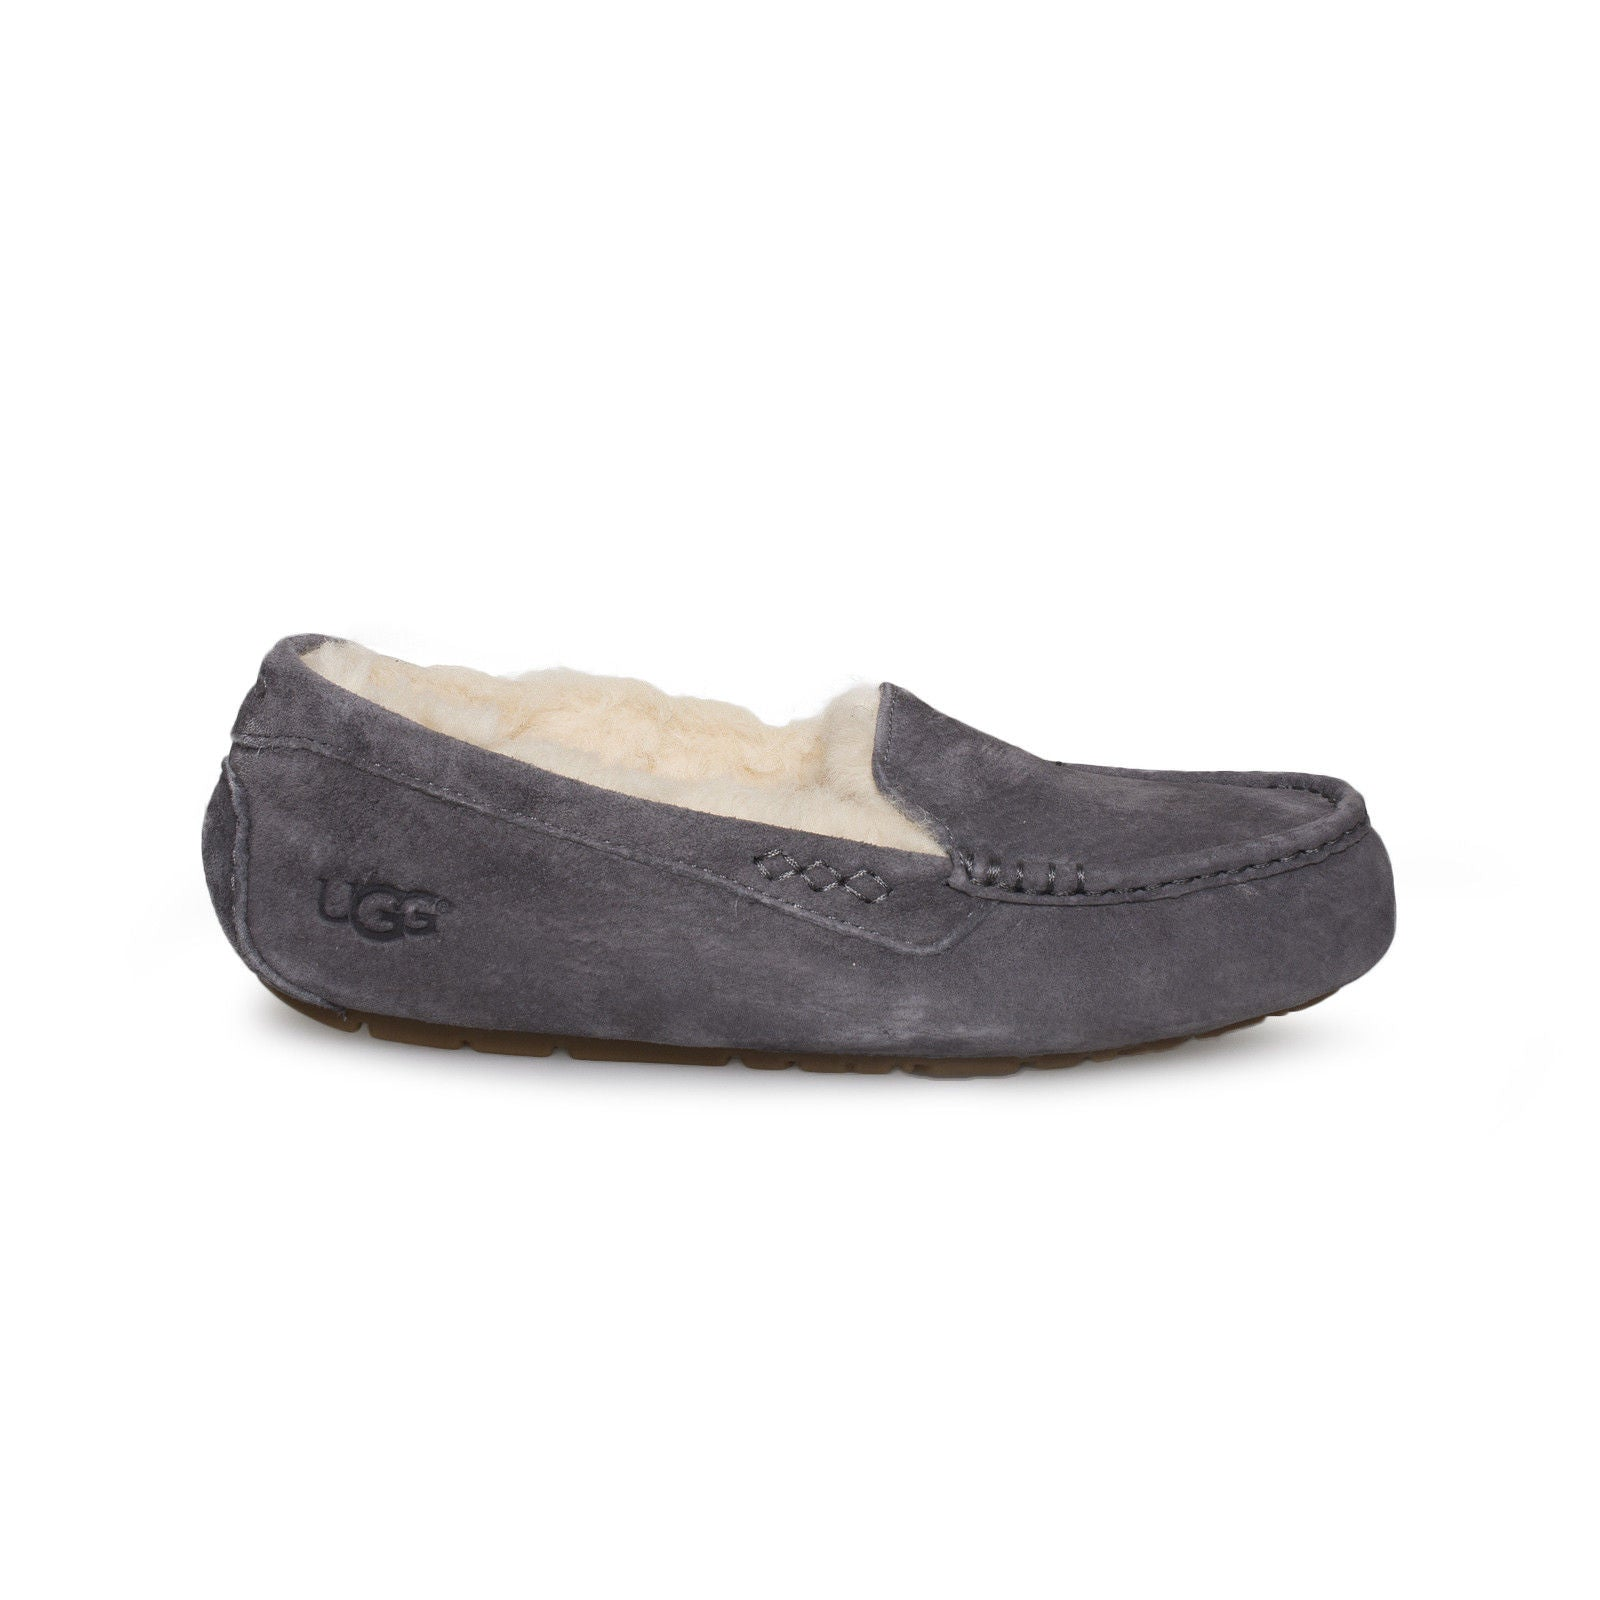 b1b24303784 best ugg nightfall slipper rubber c0397 56d58